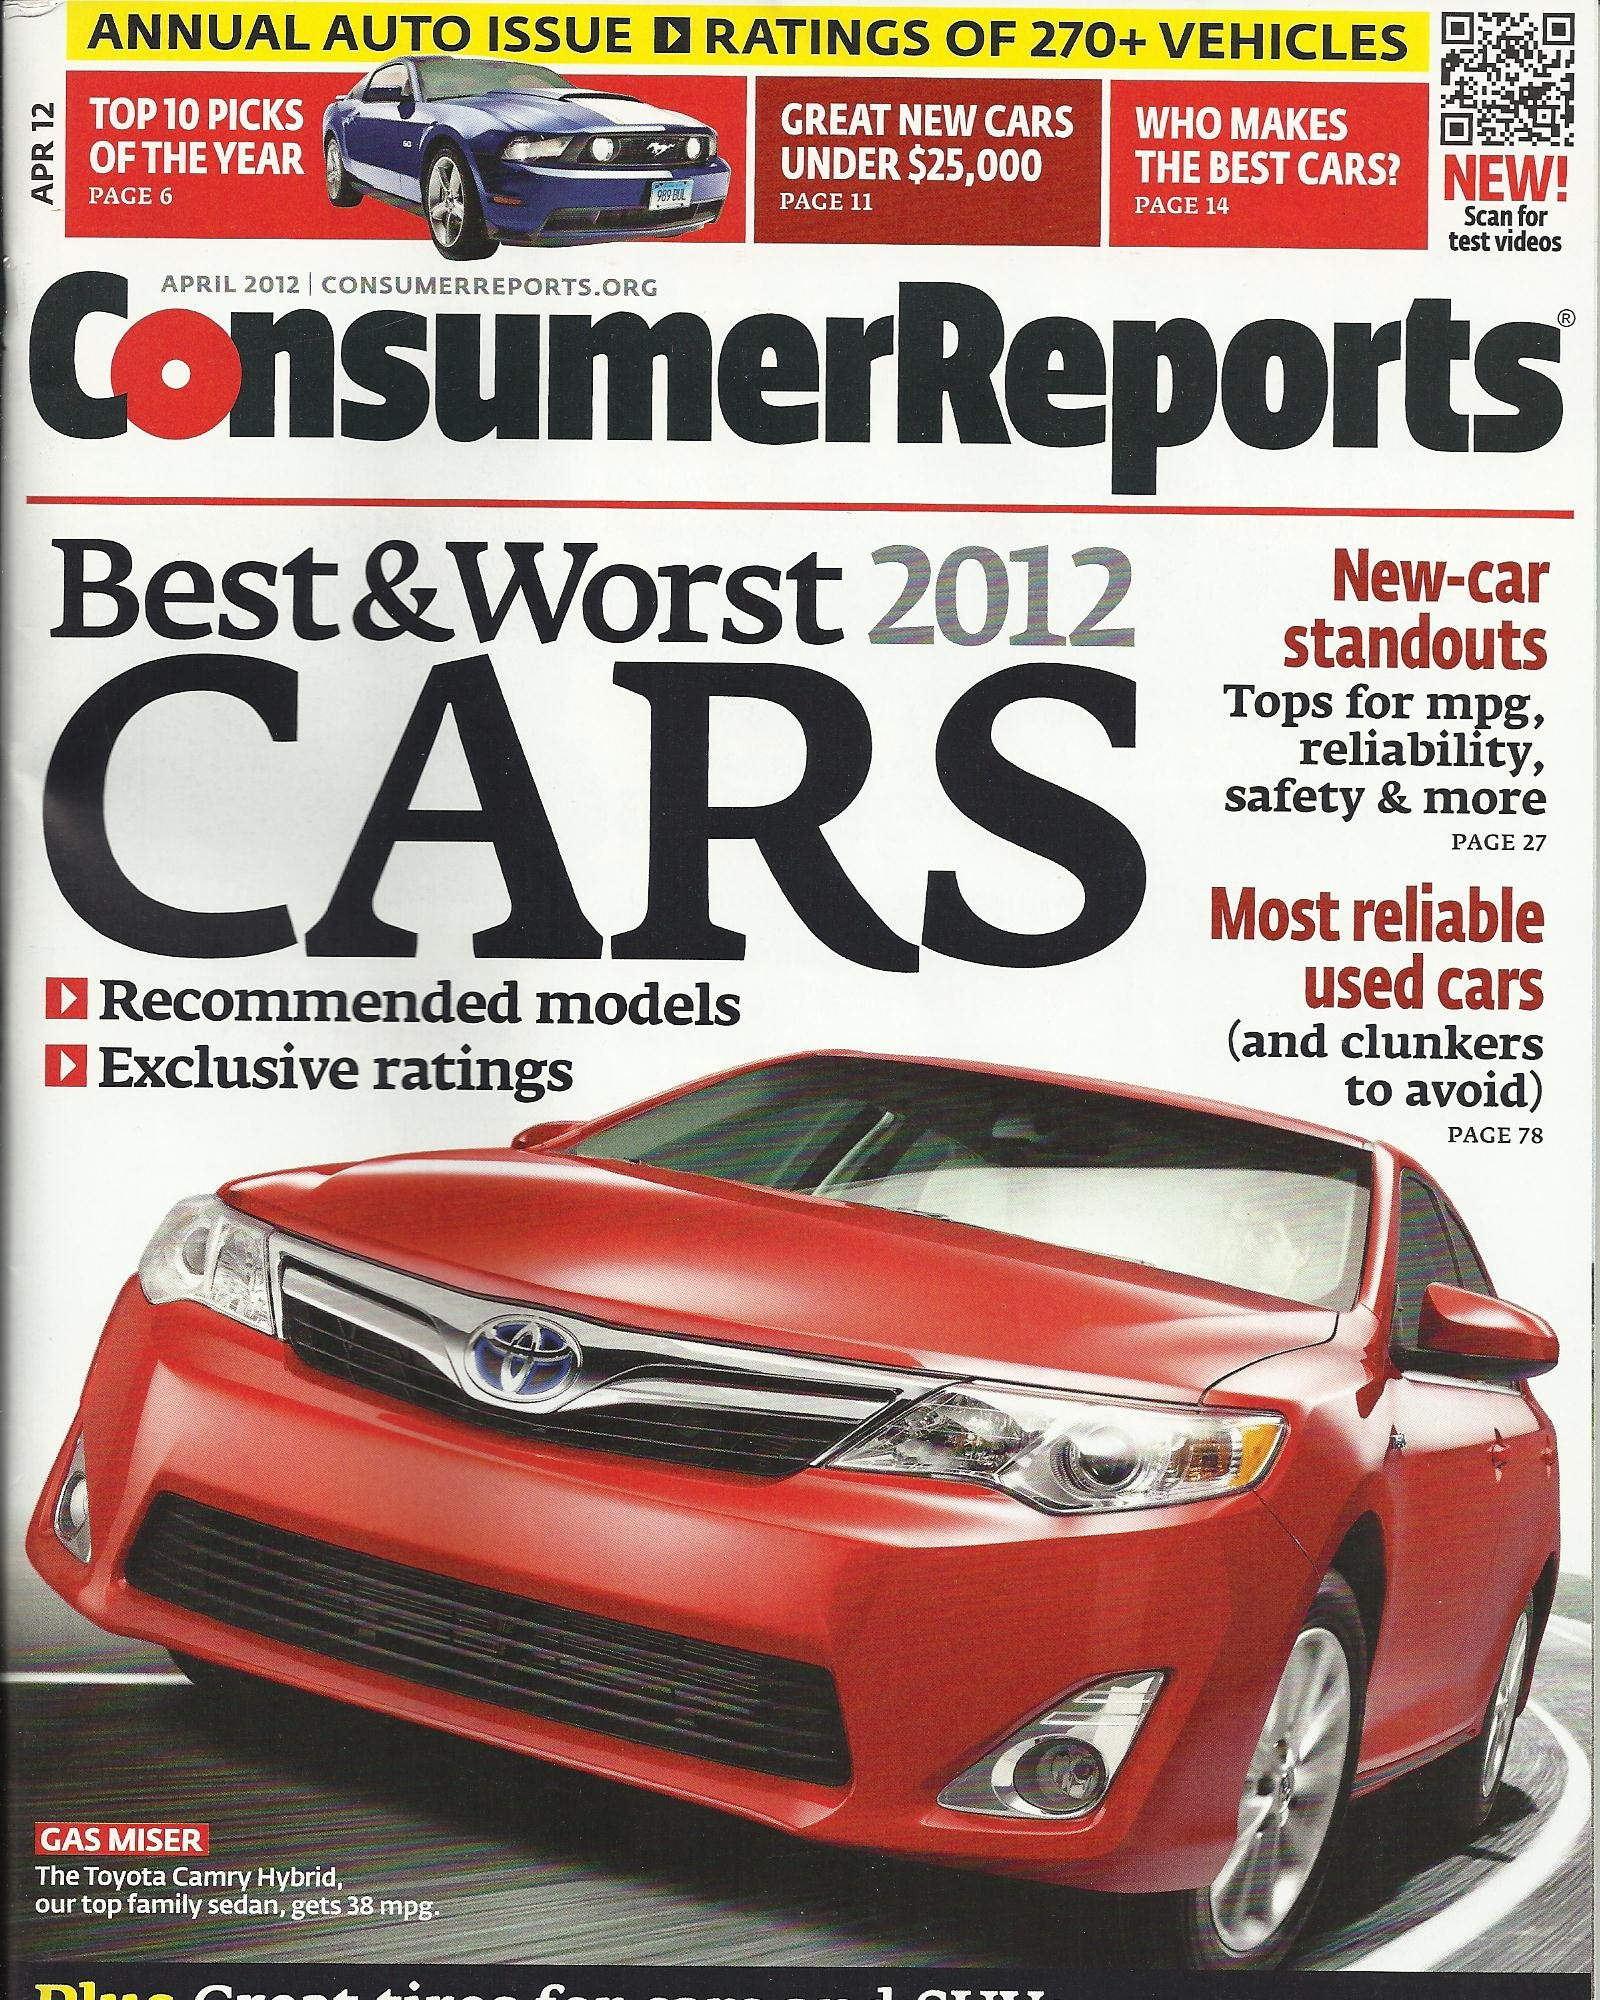 Consumer Reports April 2012 Annual Auto Issue - Best & Worst Cars ...